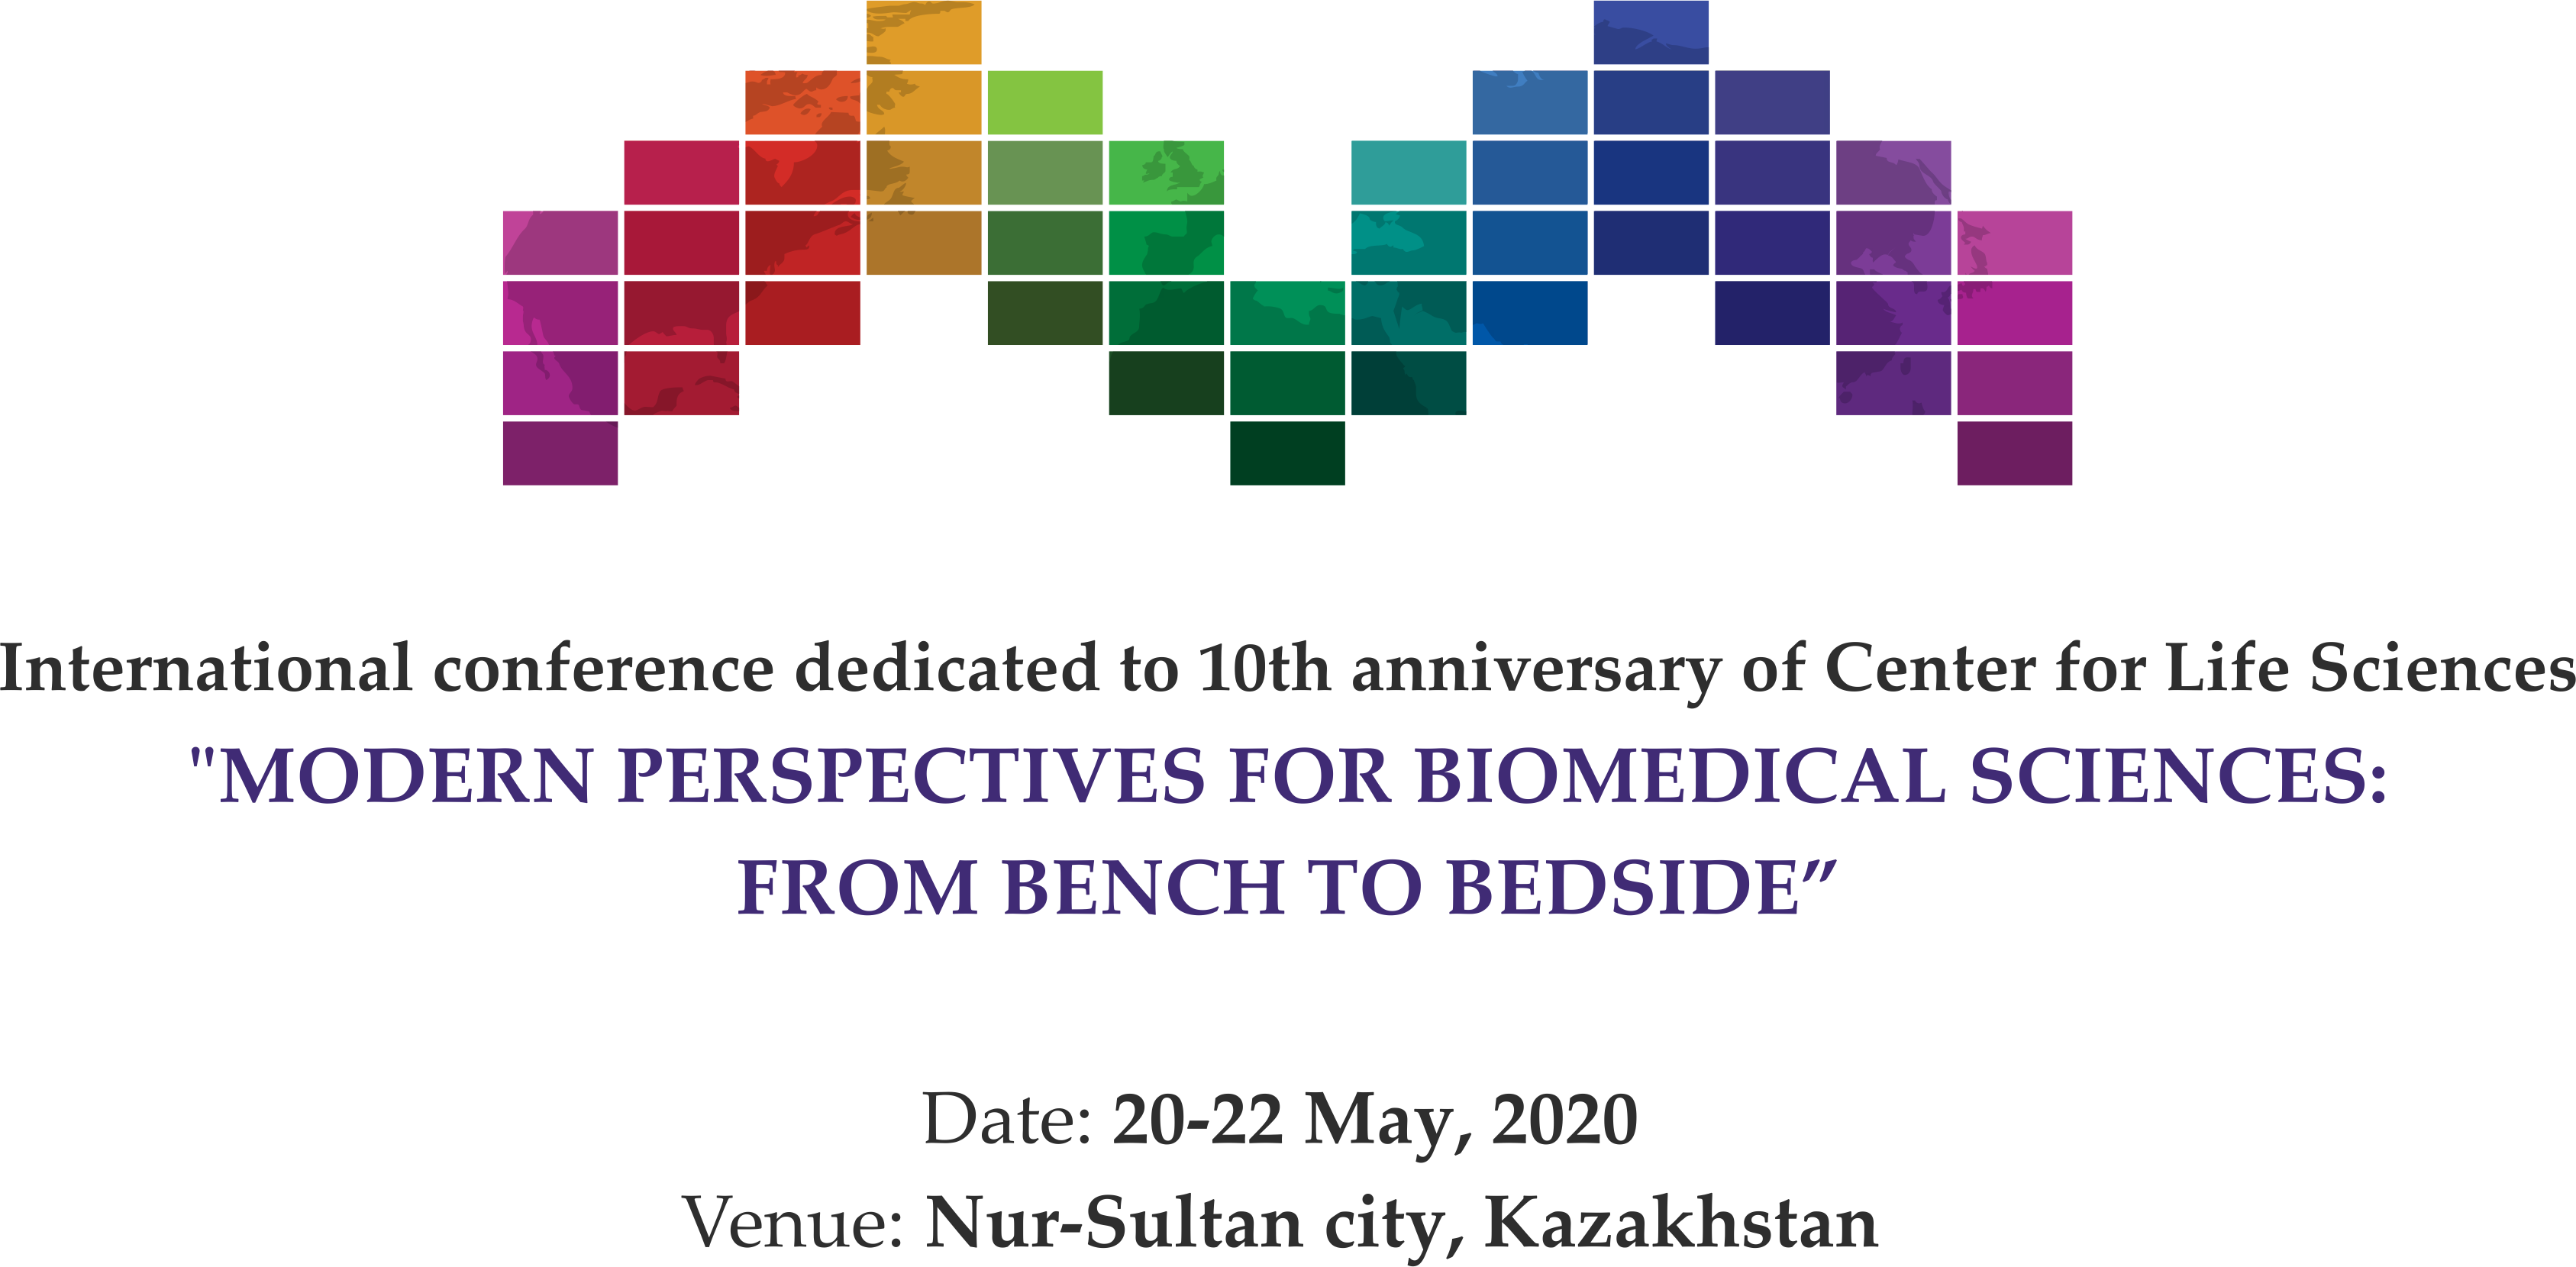 MODERN PERSPECTIVES FOR BIOMEDICAL SCIENCES: FROM BENCH TO BEDSIDE